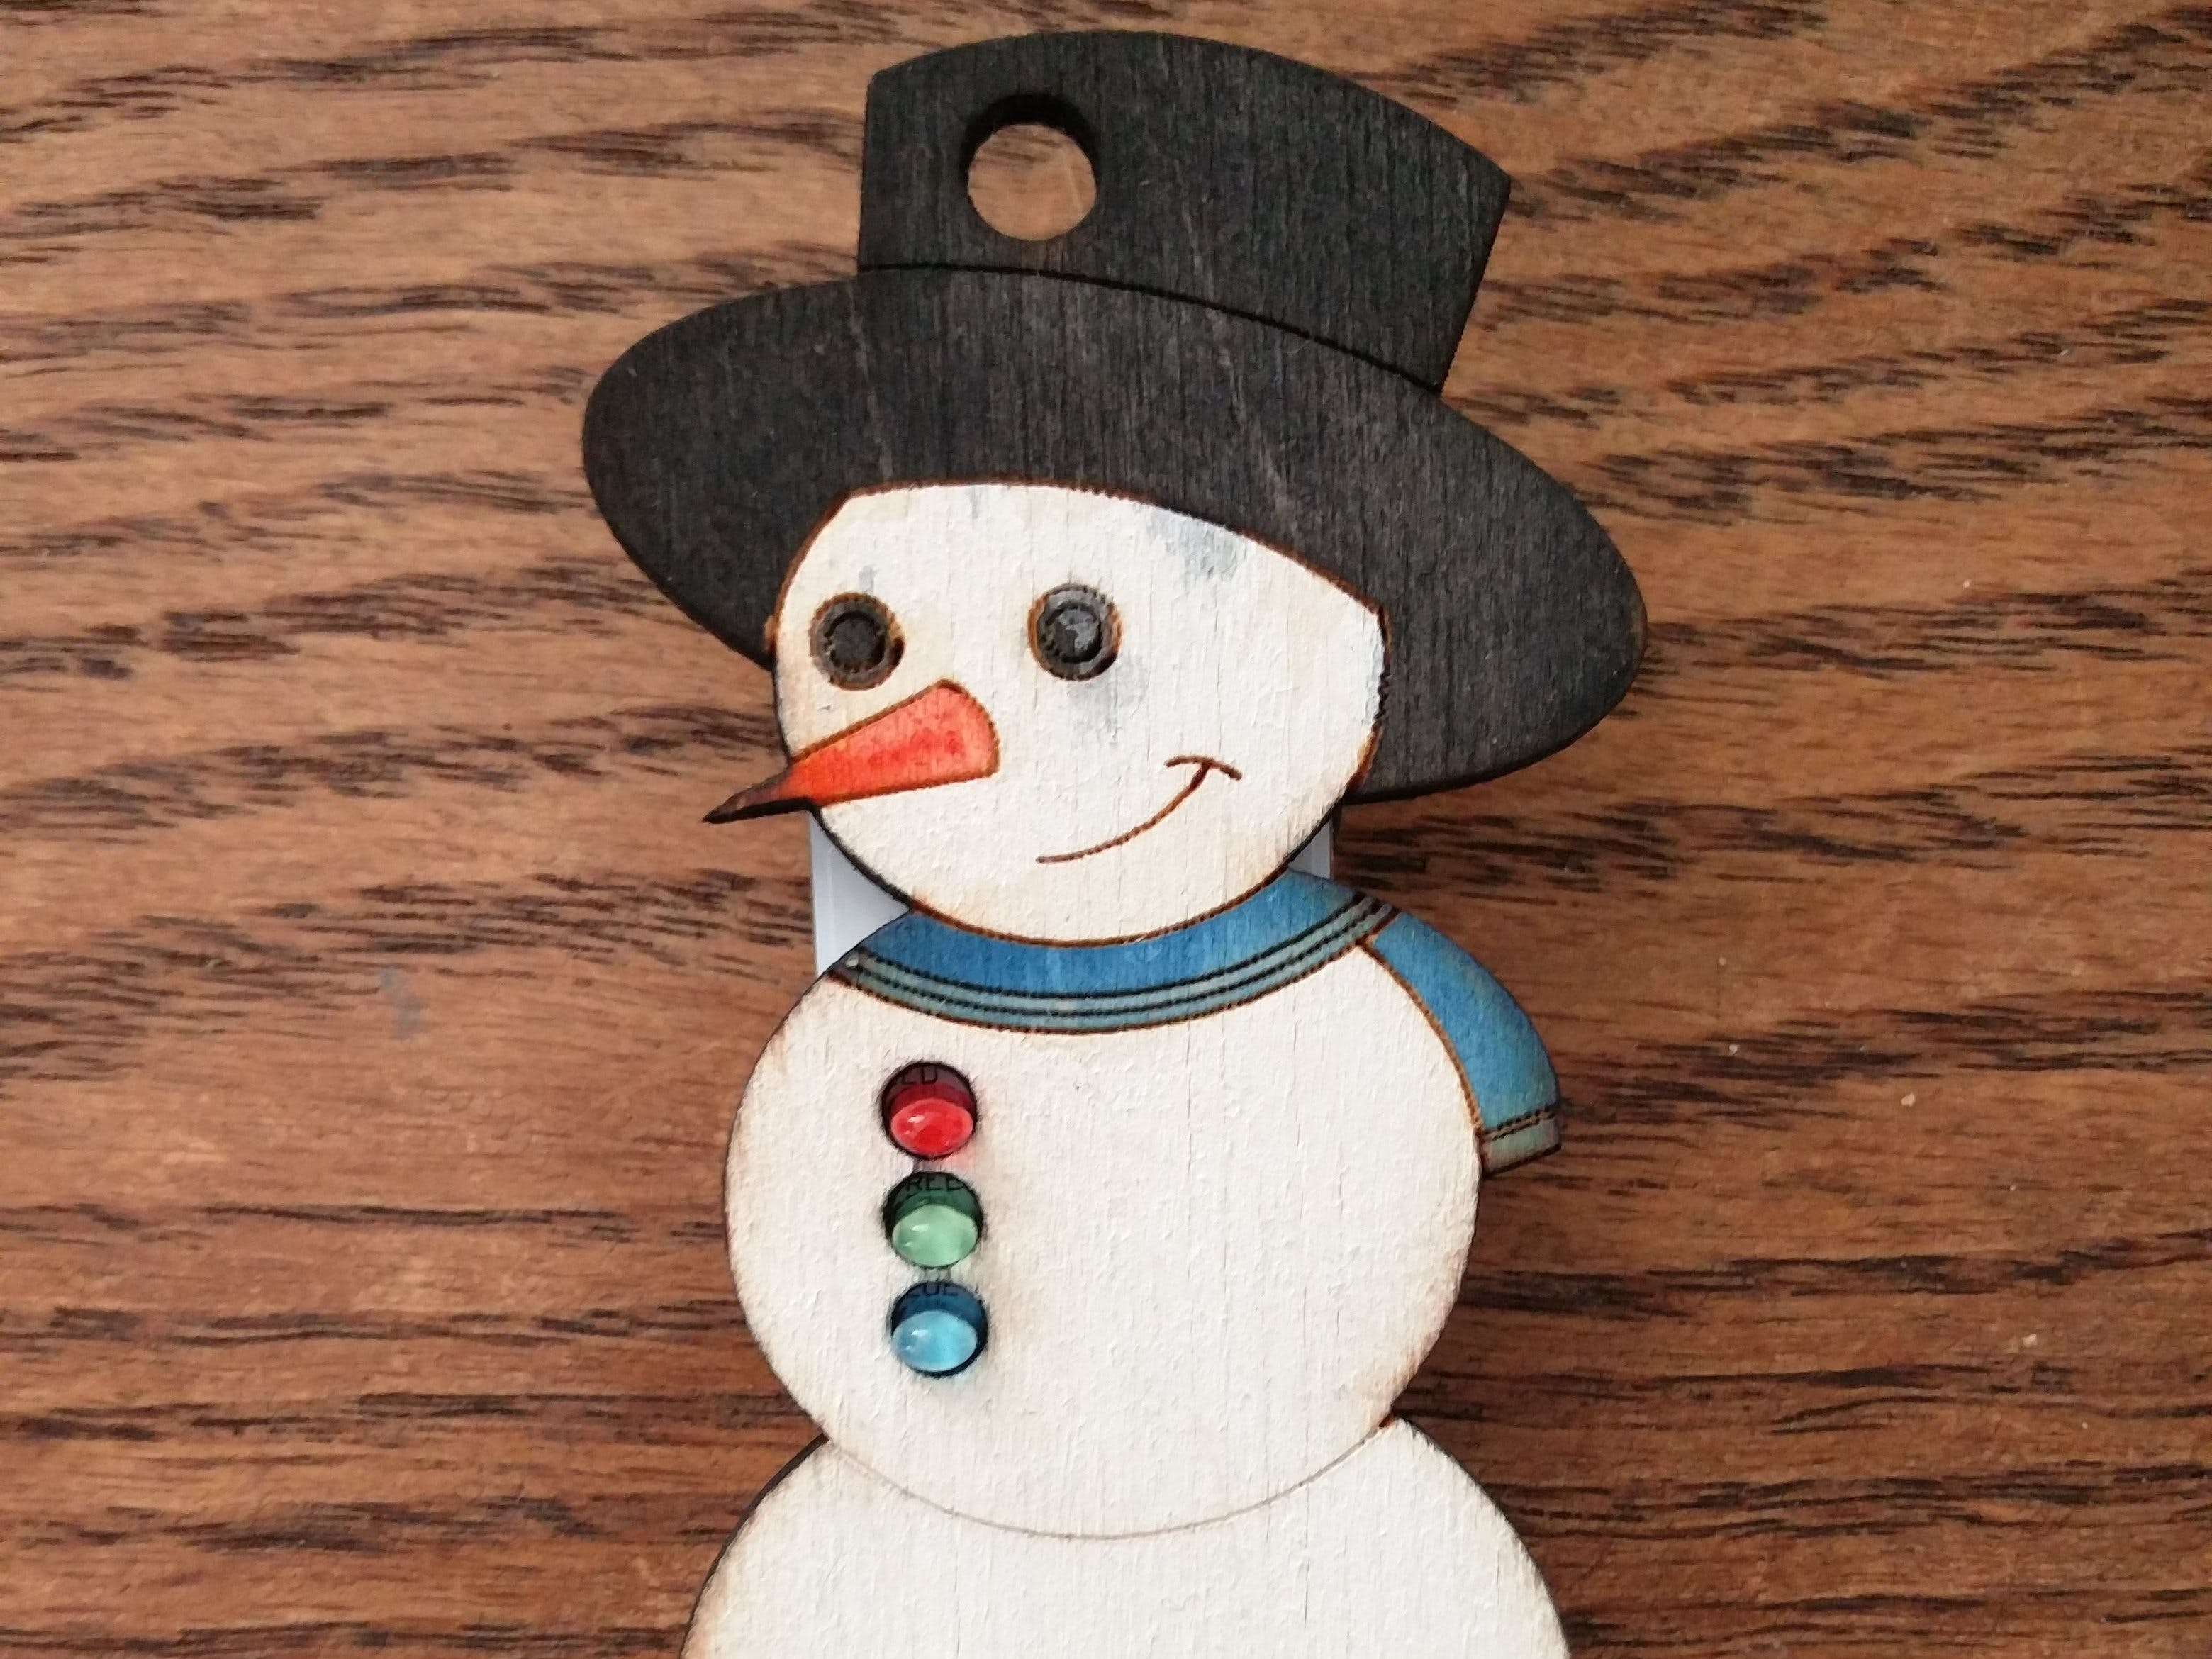 Blinking and Singing Snowman Ornament